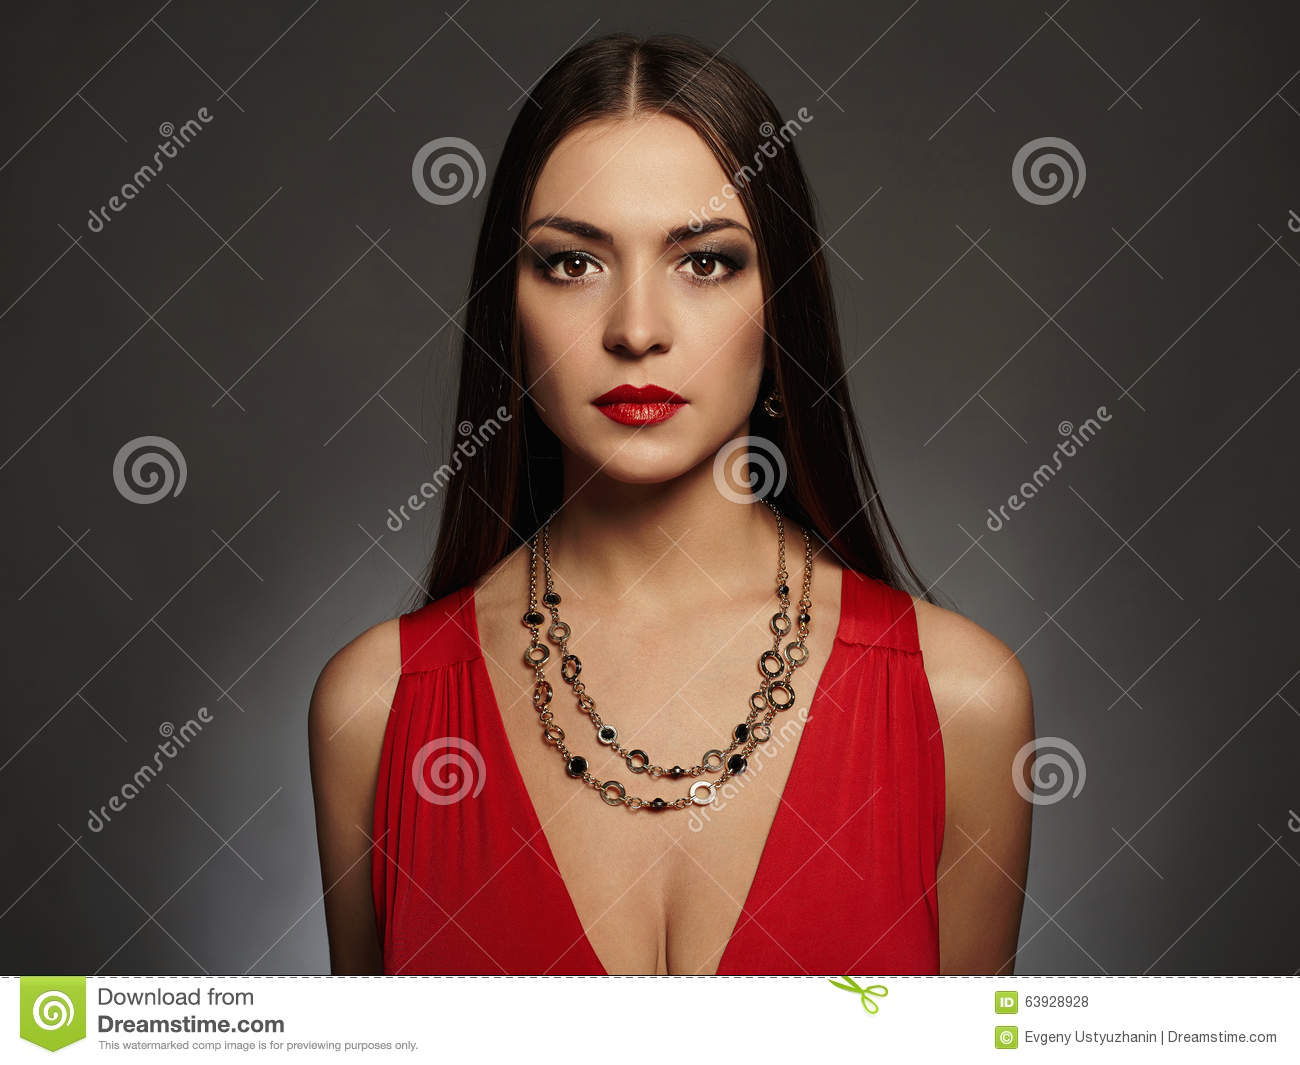 Young beautiful woman.Beauty girl wearing jewelry.elegant lady in red dress